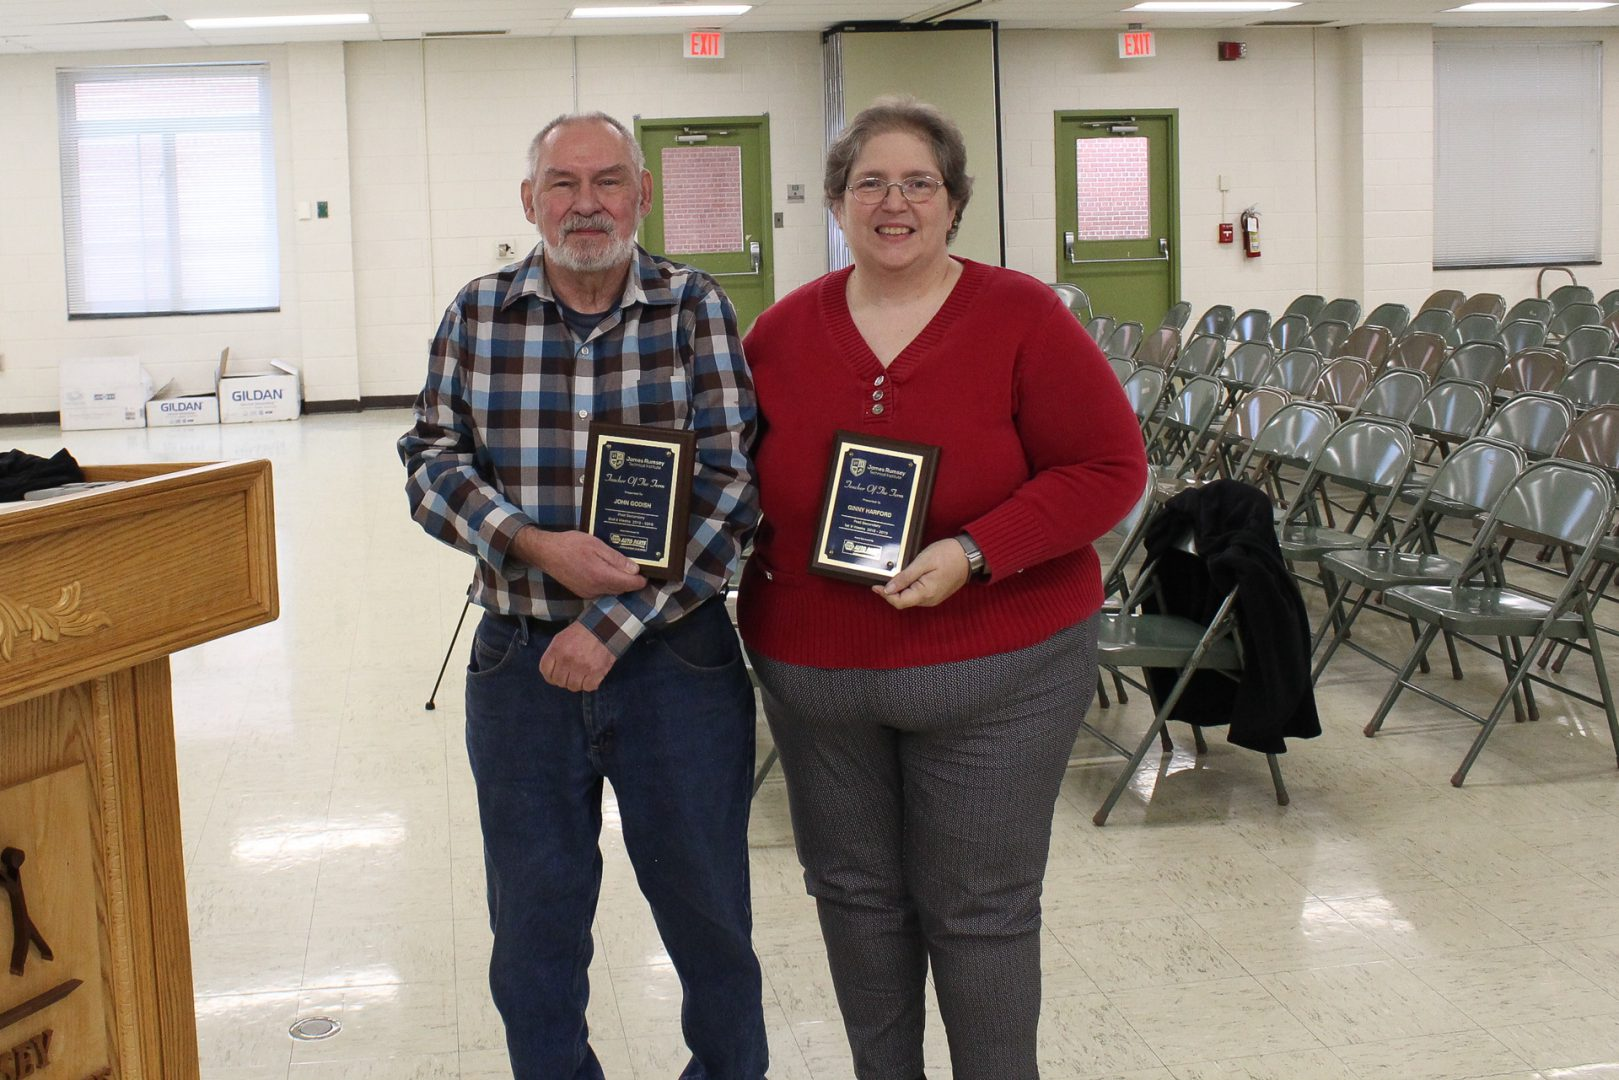 John Godish, Electrical Instructor, and Ginny Harford, Practical Nursing instructor posing with their Teacher of the Term awards.